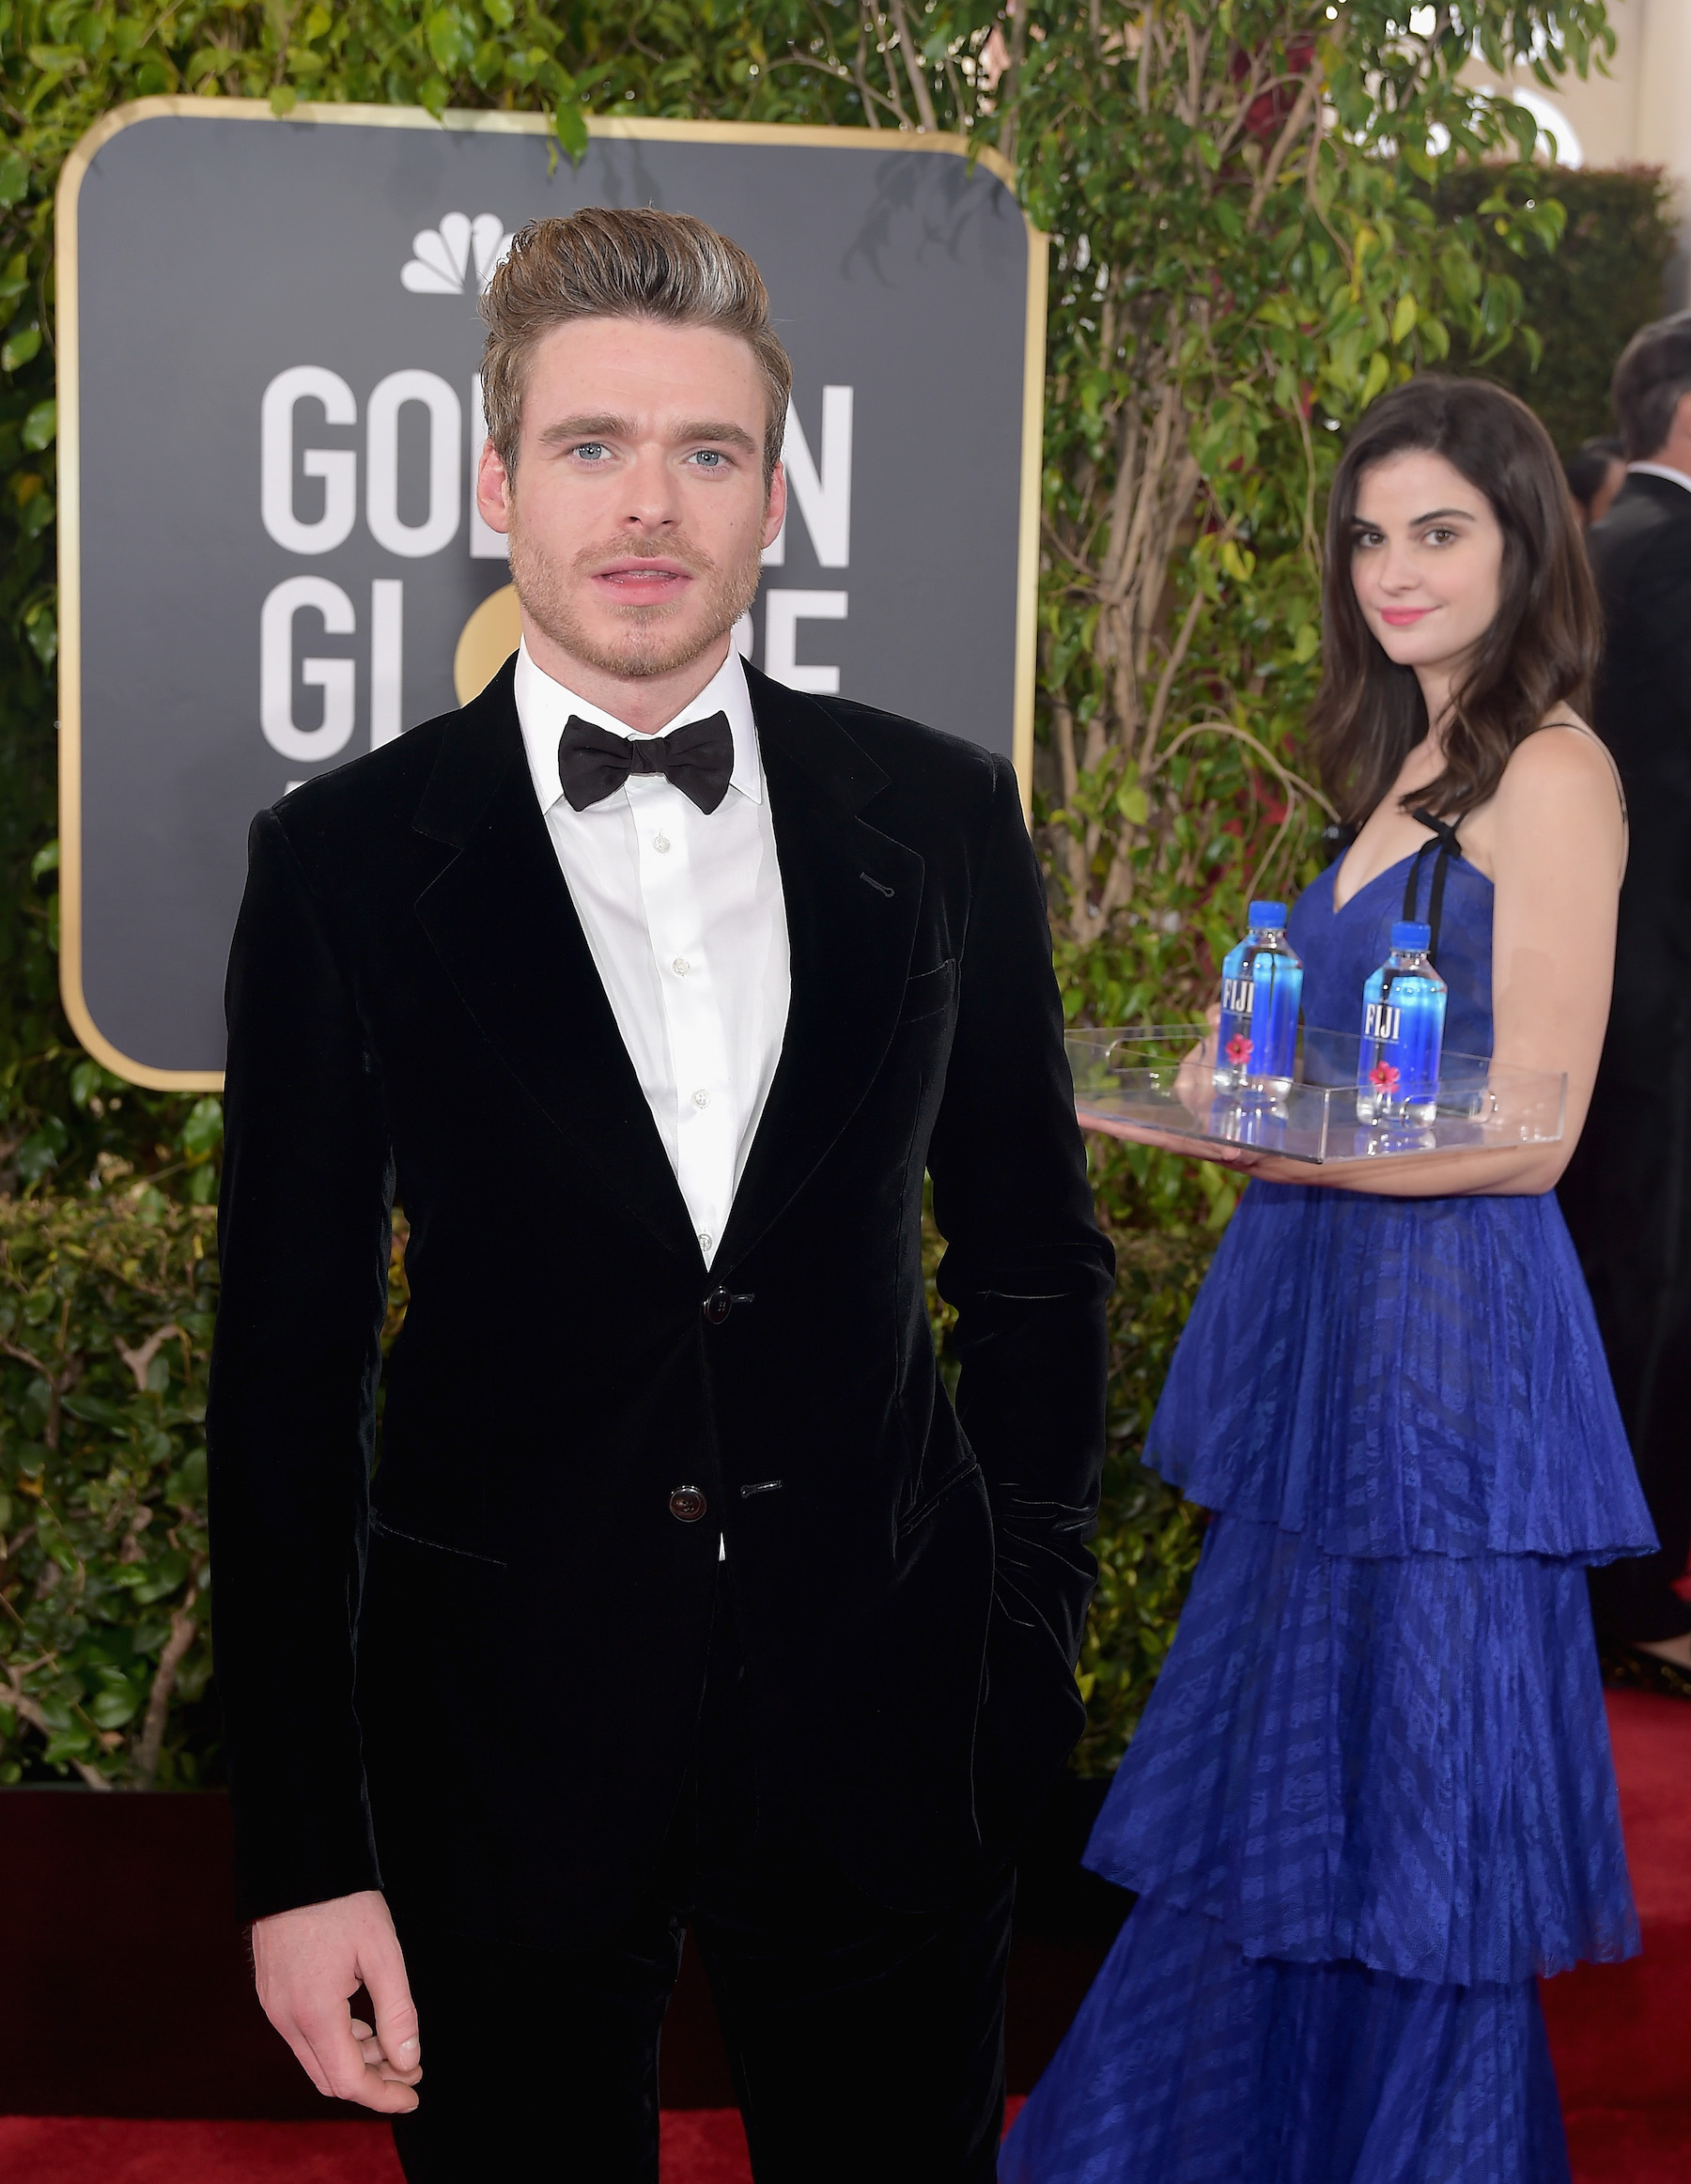 <div class='meta'><div class='origin-logo' data-origin='Creative Content'></div><span class='caption-text' data-credit='Stefanie Keenan/Getty Images for FIJI Water'>The so-called 'FIJI water girl' appears at the 76th Annual Golden Globe Awards on January 6, 2019, at the Beverly Hilton in Los Angeles, California.</span></div>